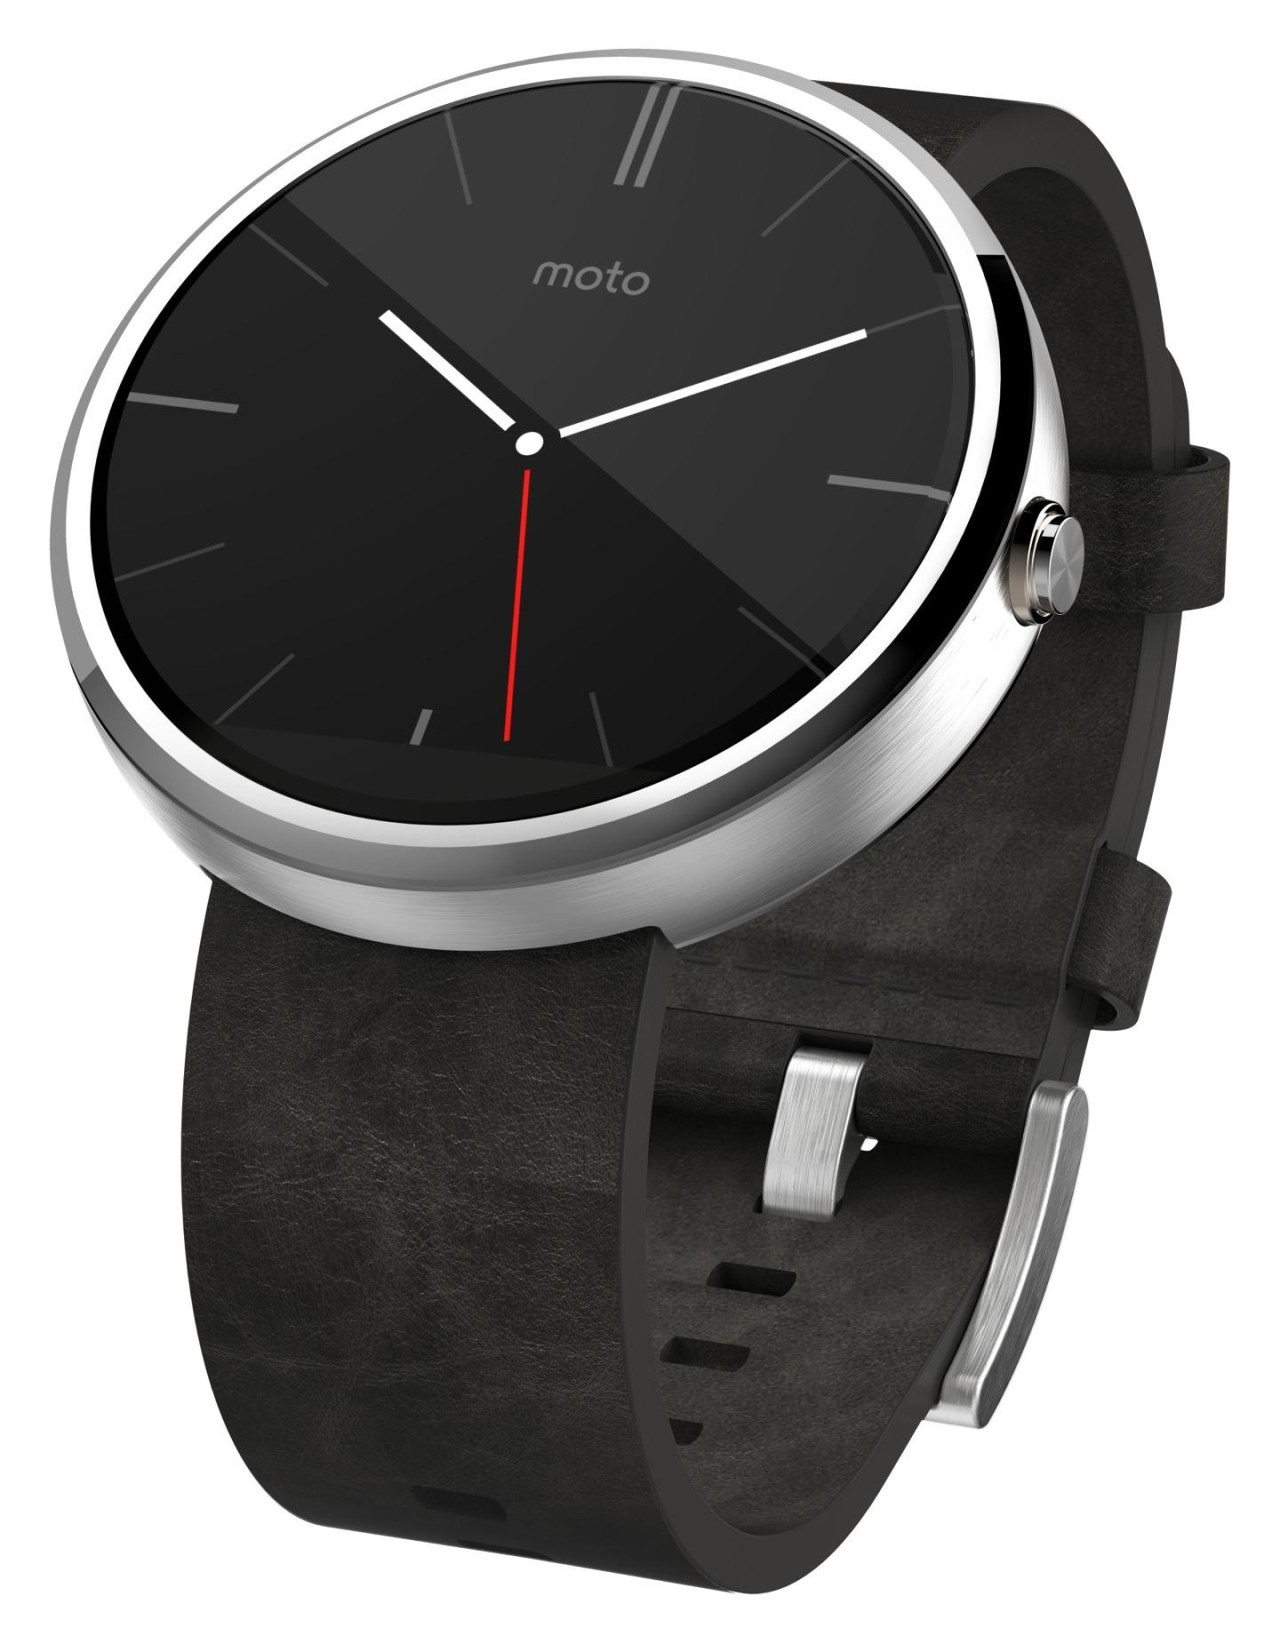 Moto 360 Press Images 4 1280x1644 - The Moto 360 is now available for $250